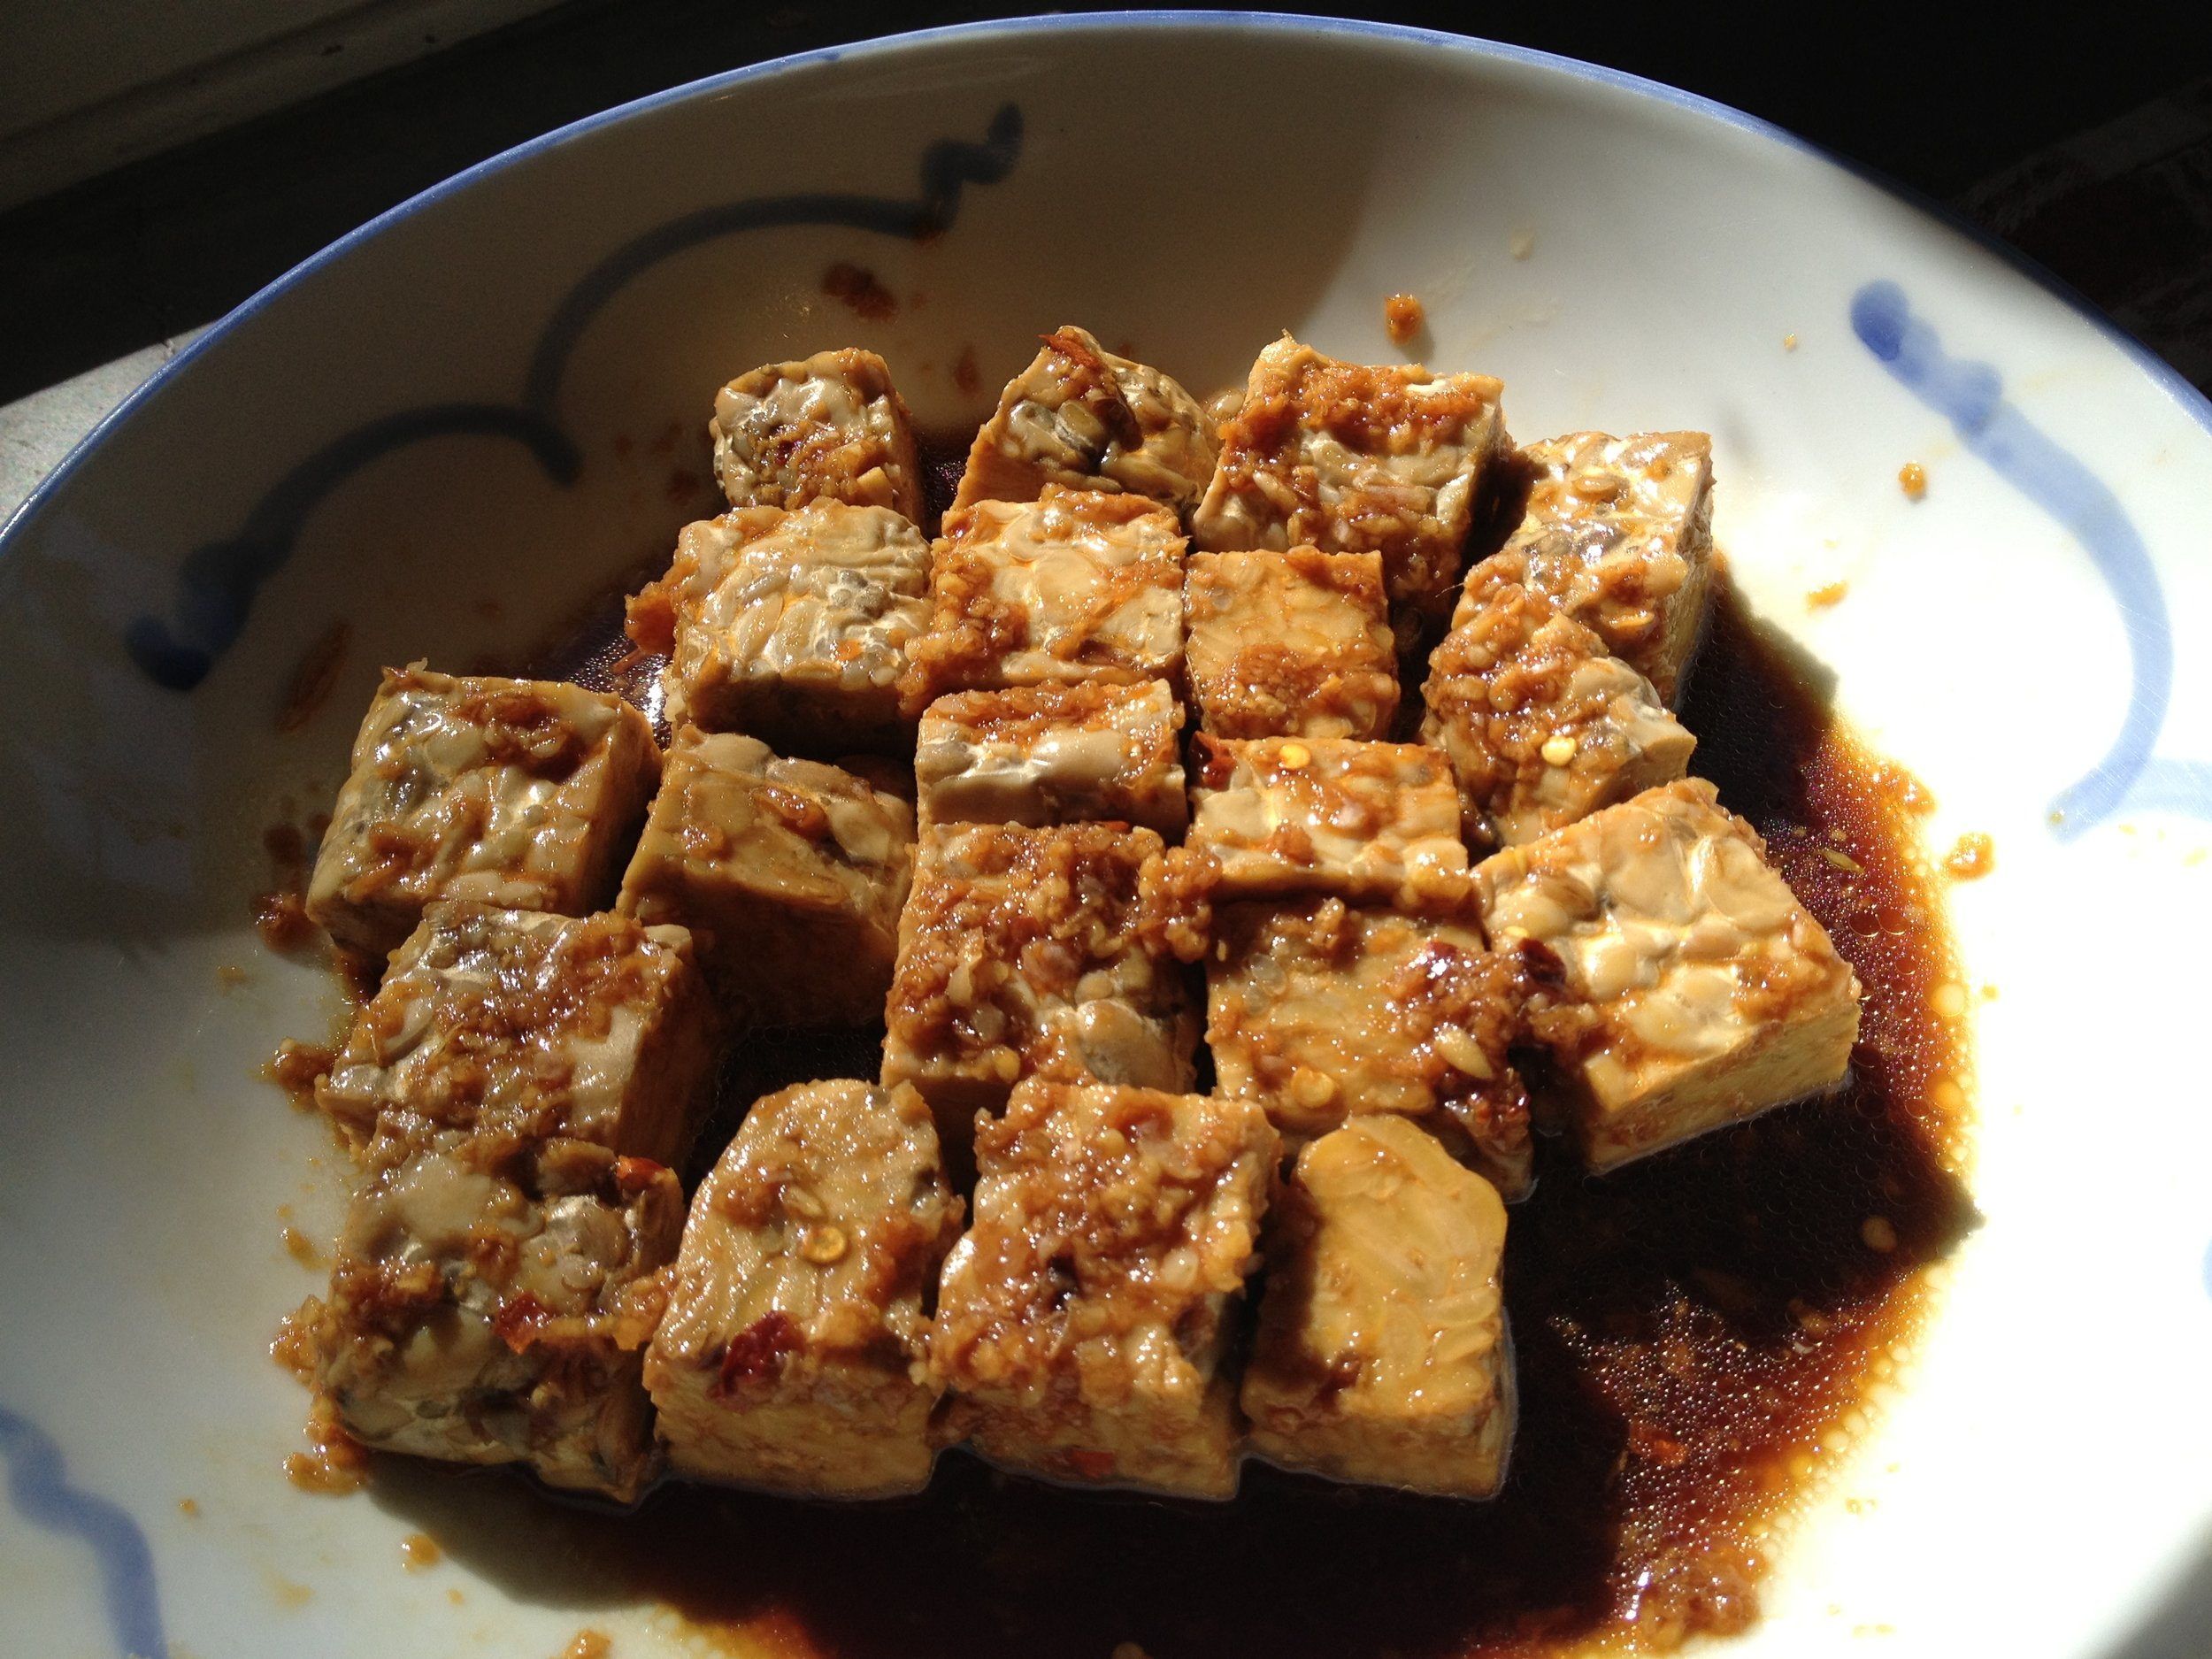 Marinating the Tempeh